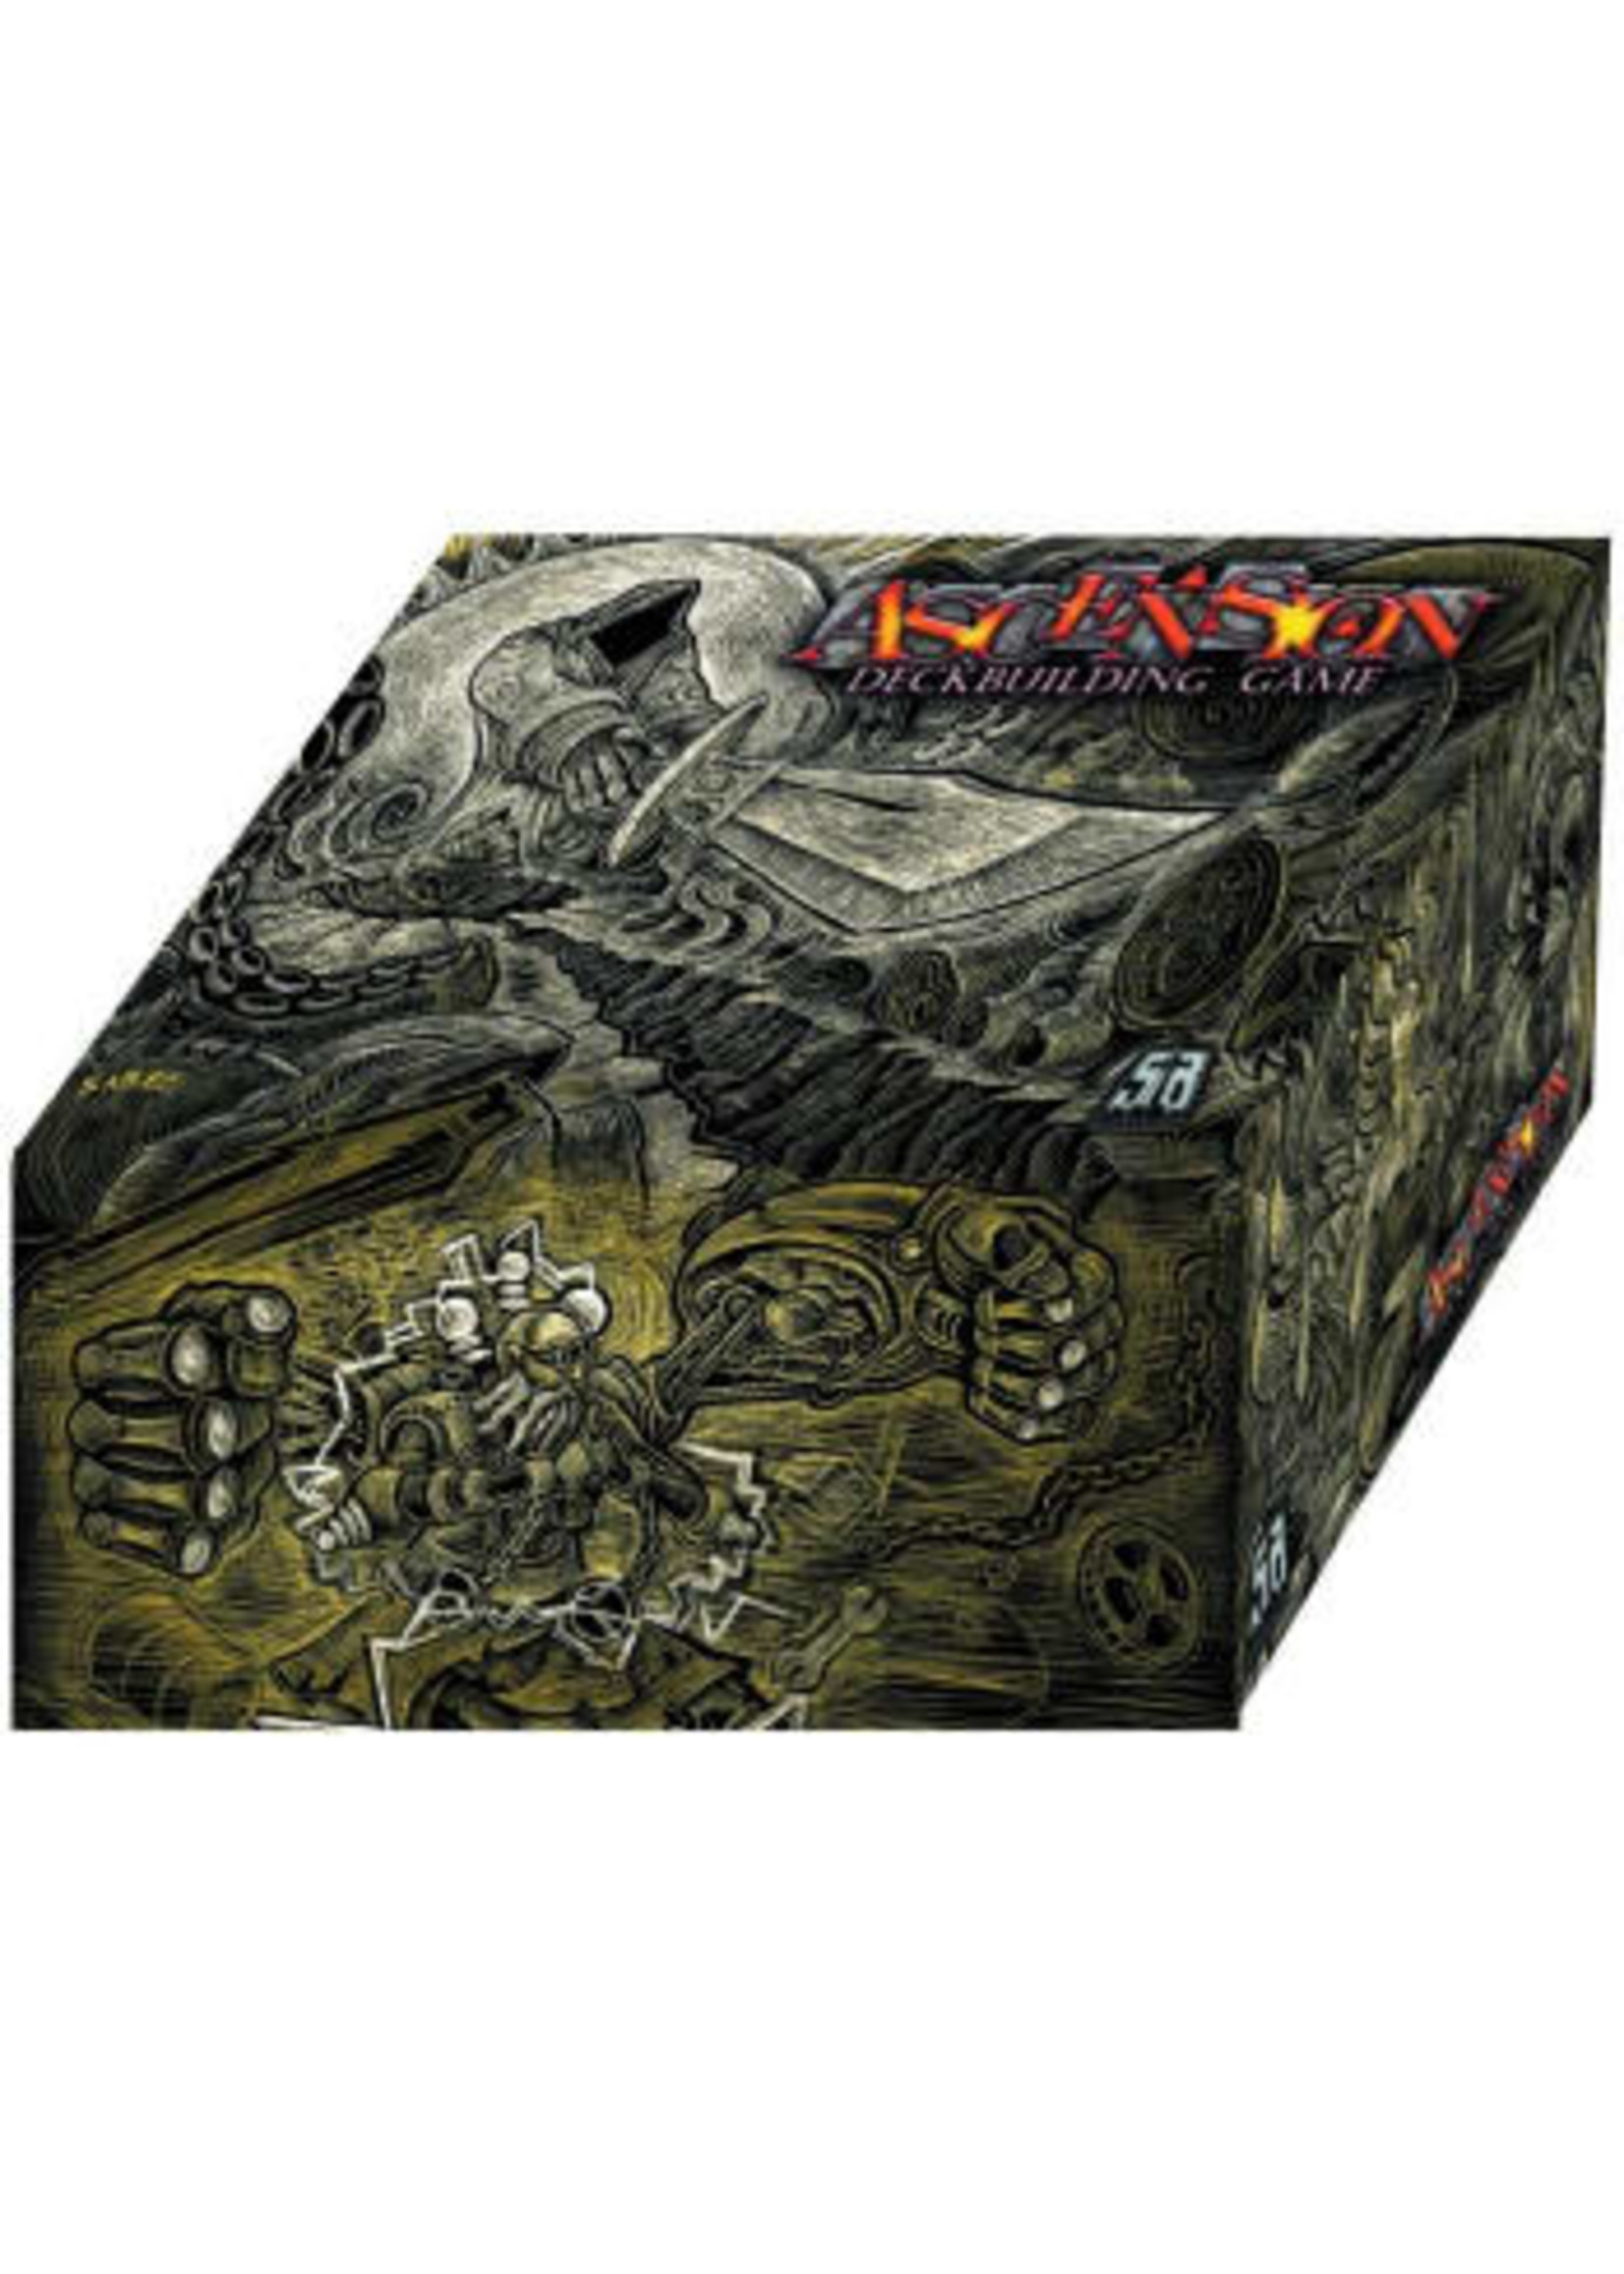 Ascension Collection Box